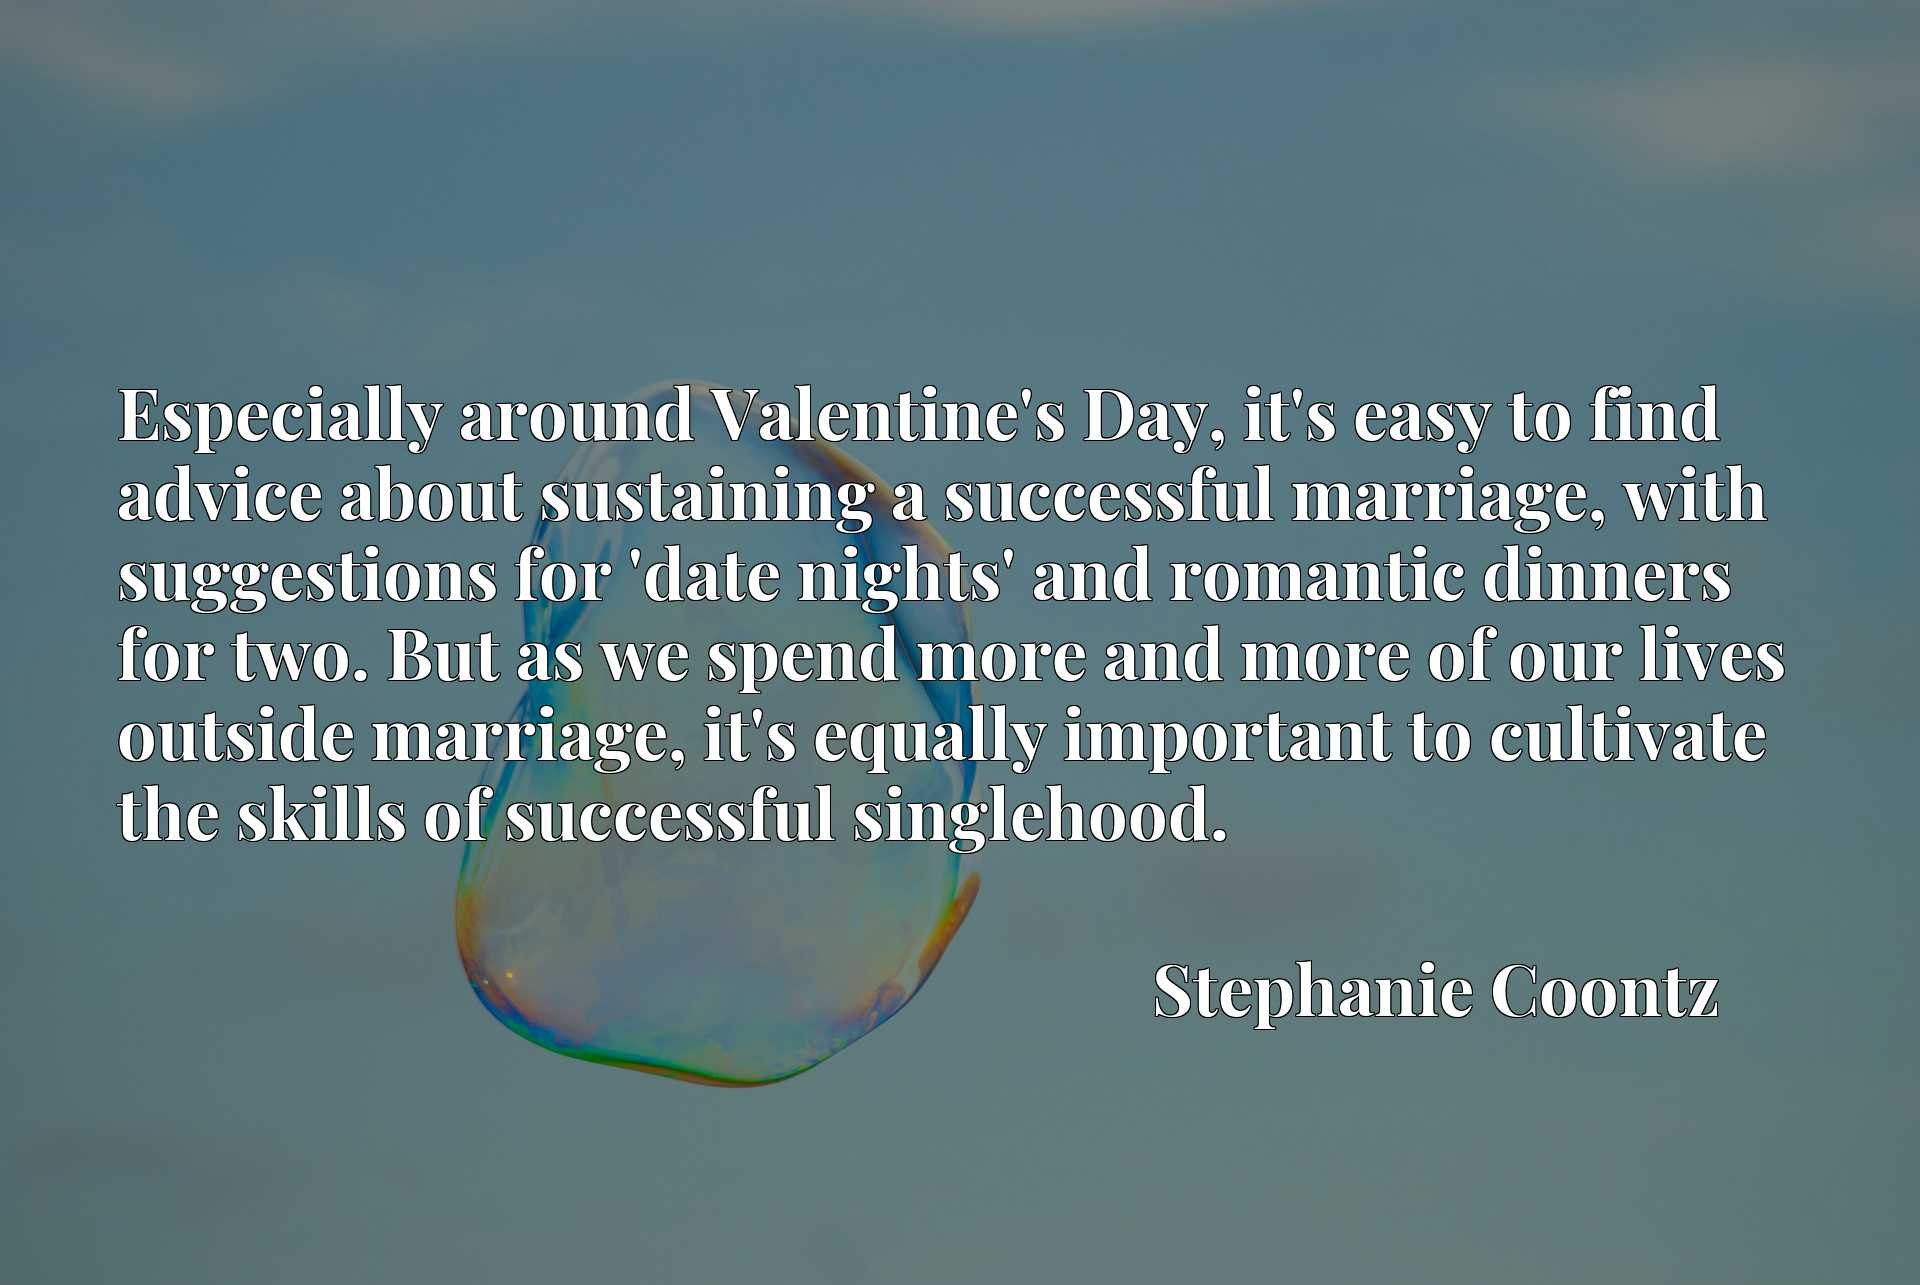 Especially around Valentine's Day, it's easy to find advice about sustaining a successful marriage, with suggestions for 'date nights' and romantic dinners for two. But as we spend more and more of our lives outside marriage, it's equally important to cultivate the skills of successful singlehood.